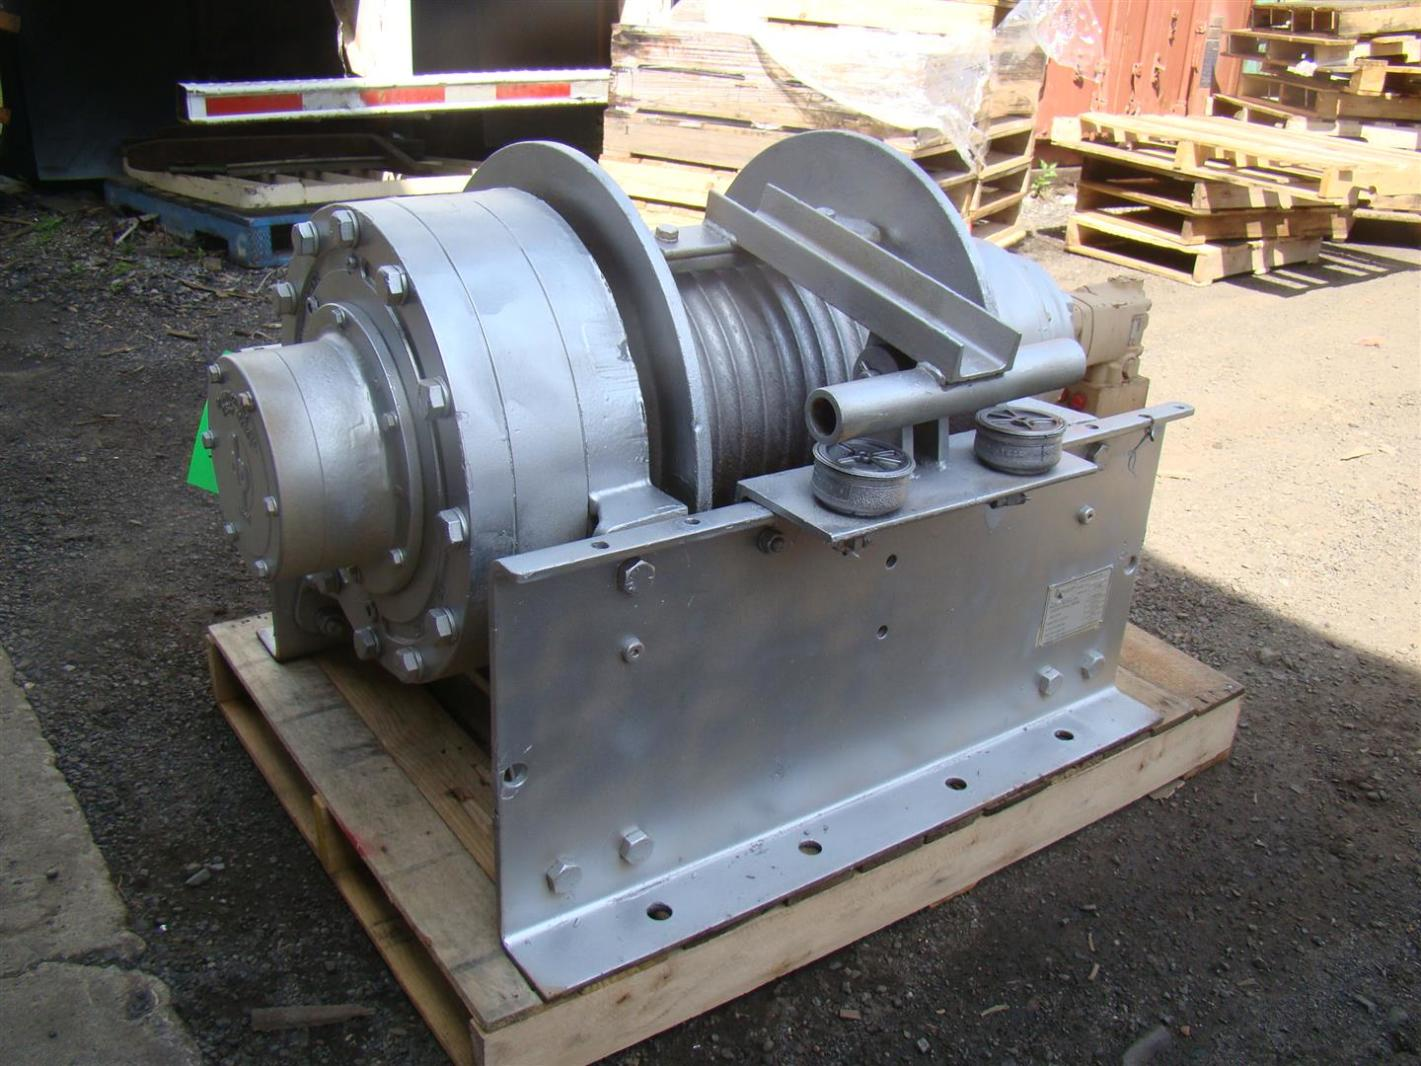 Details about DP Manufacturing Hydraulic Winch 55,000 lb Capacity Model  51882-R